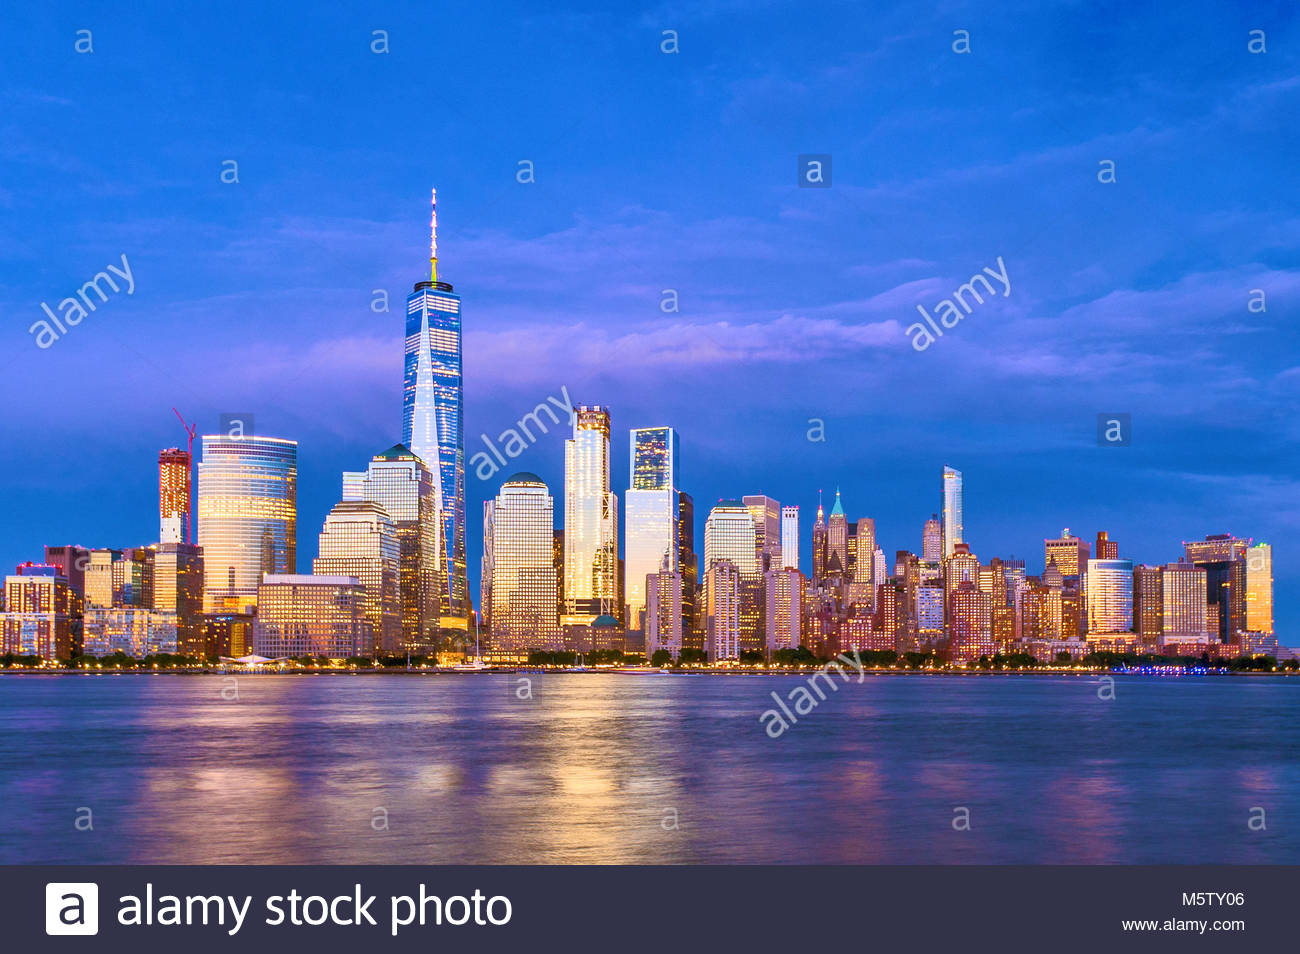 New York Skyline One World Trade Center WTC Freedom Tower Stock Photo